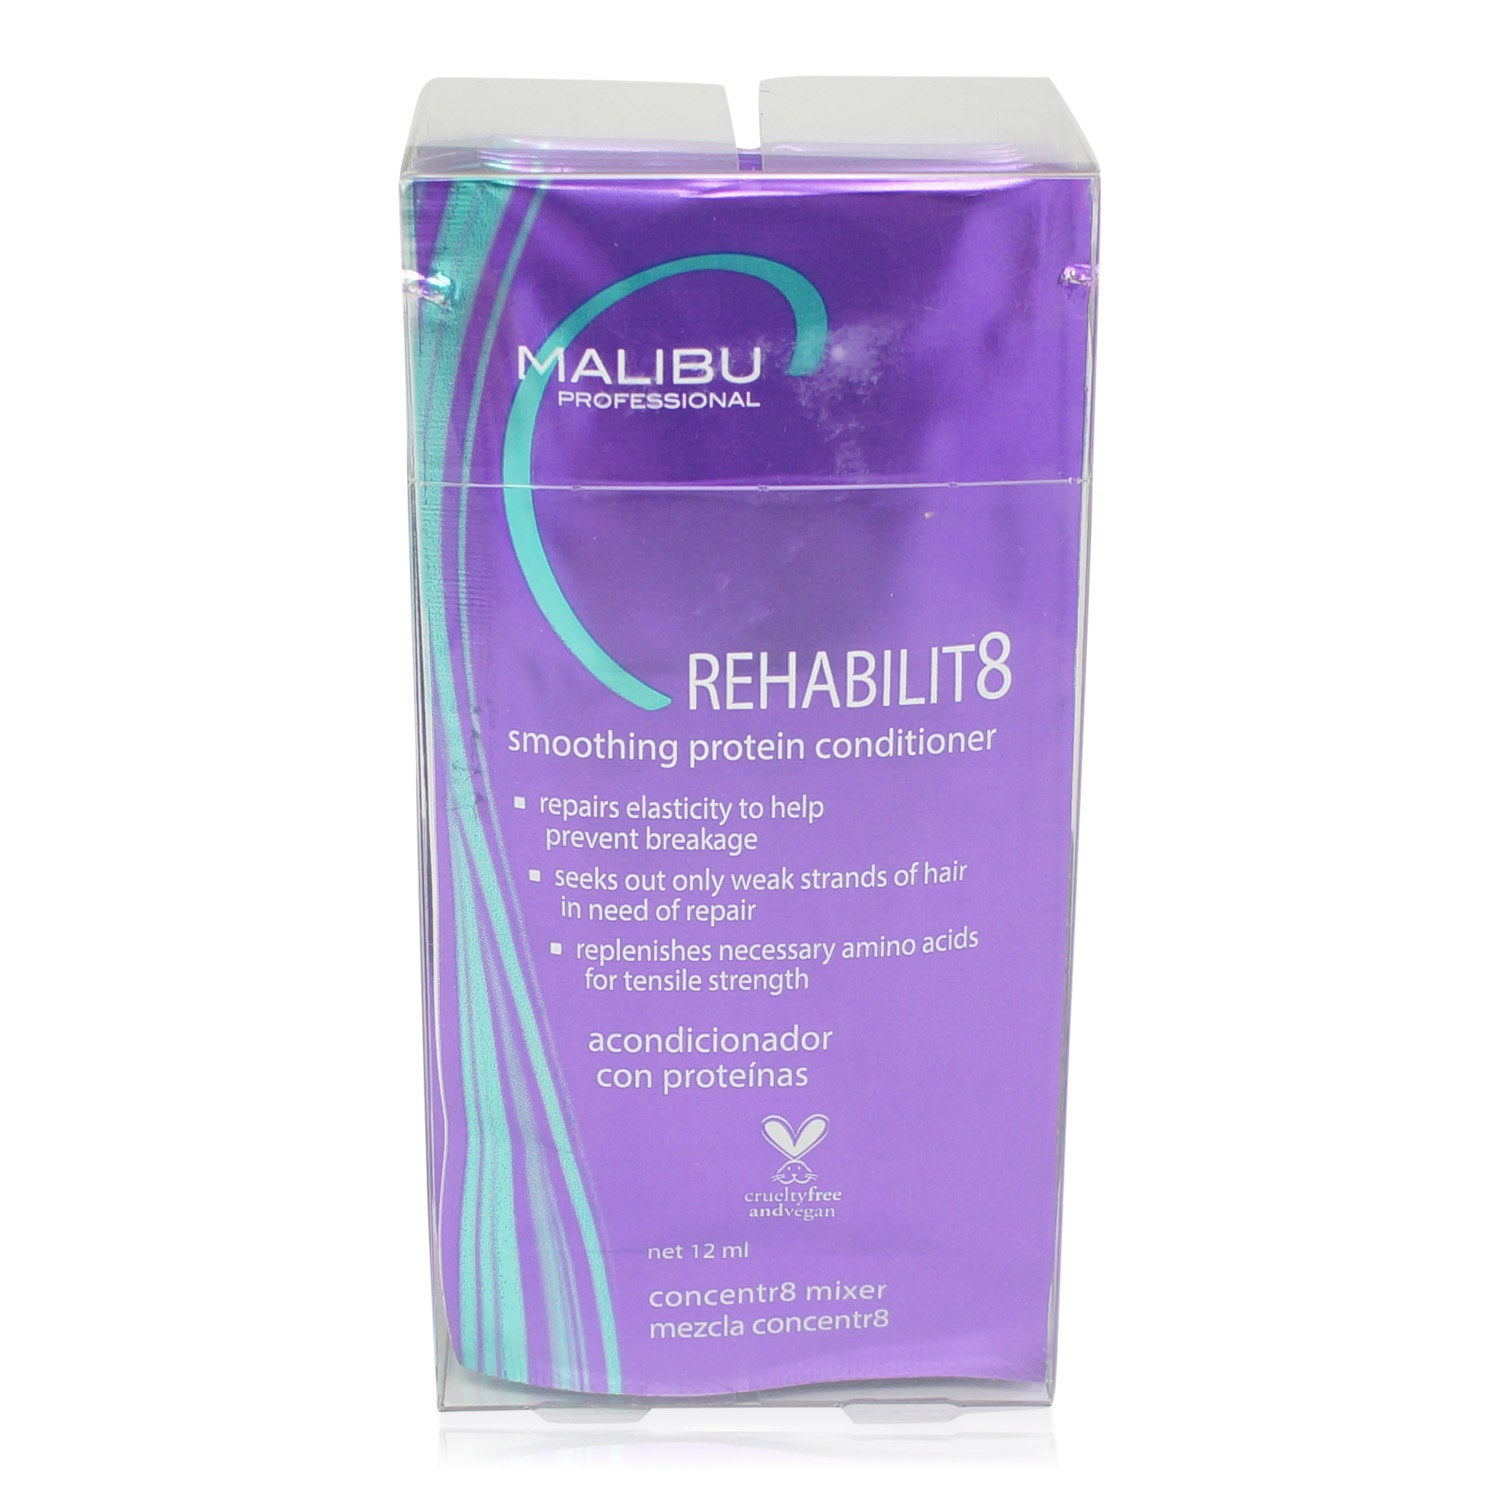 MALIBU ~ REHABILIT8 SMOOTHING PROTEIN CONDITIONER BOX OF 6